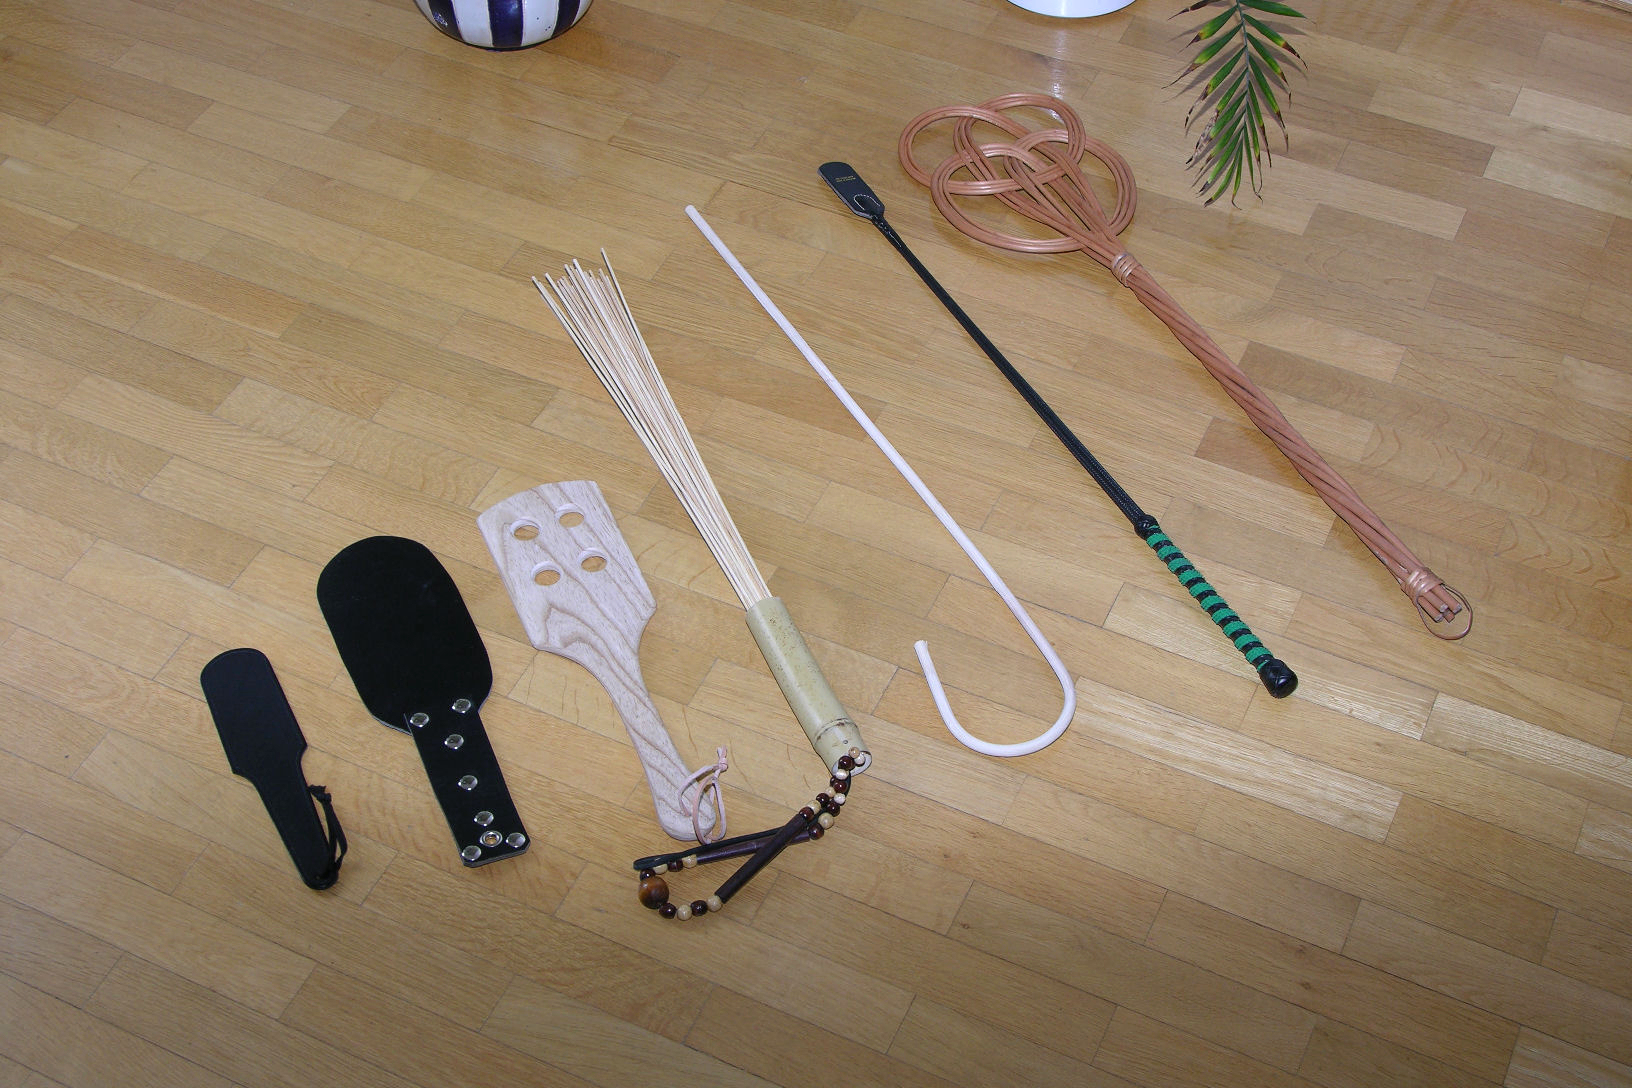 Objects to spank with